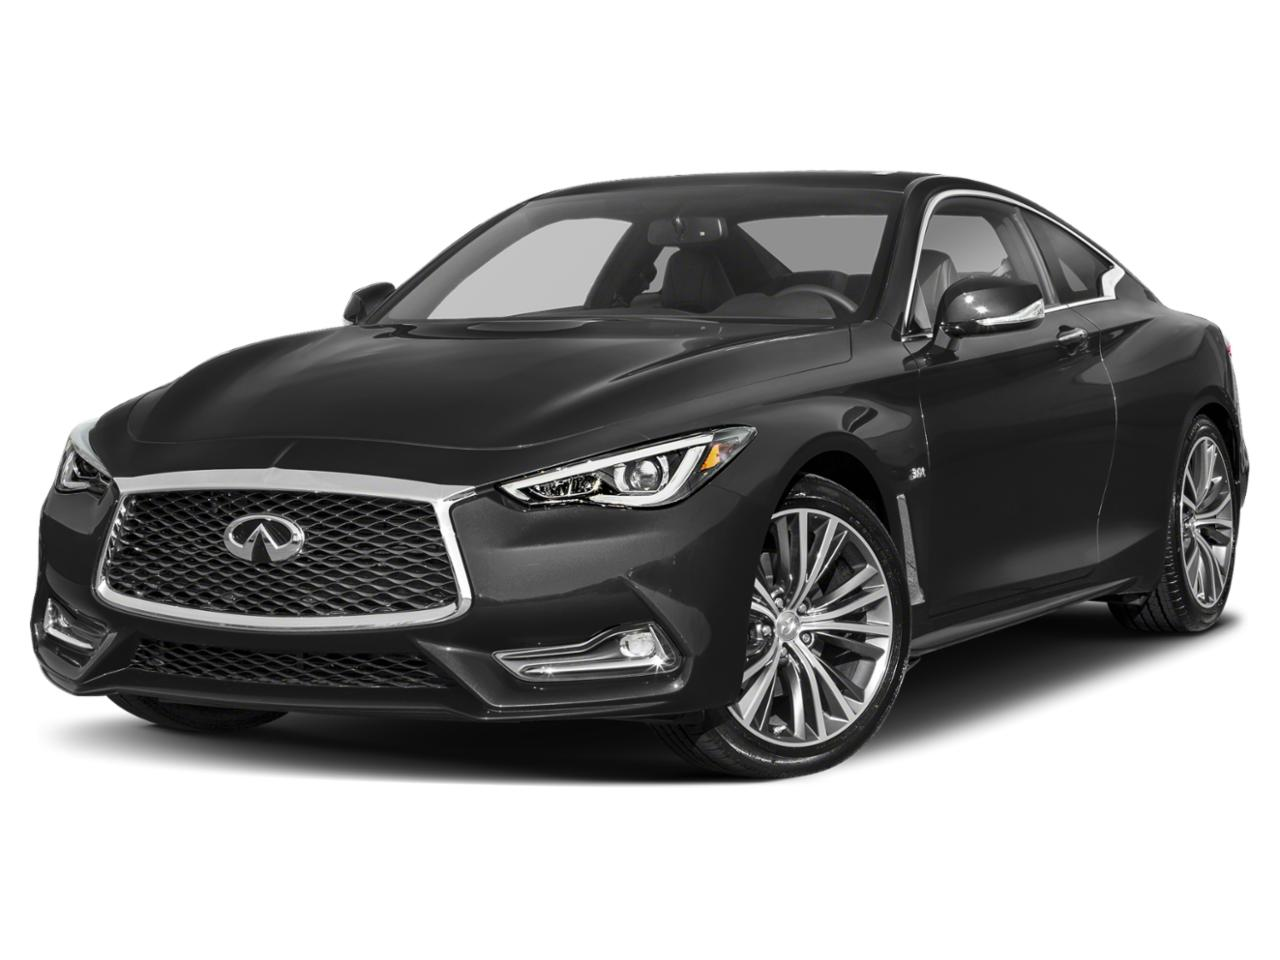 2020 INFINITI Q60 Vehicle Photo in Dallas, TX 75209